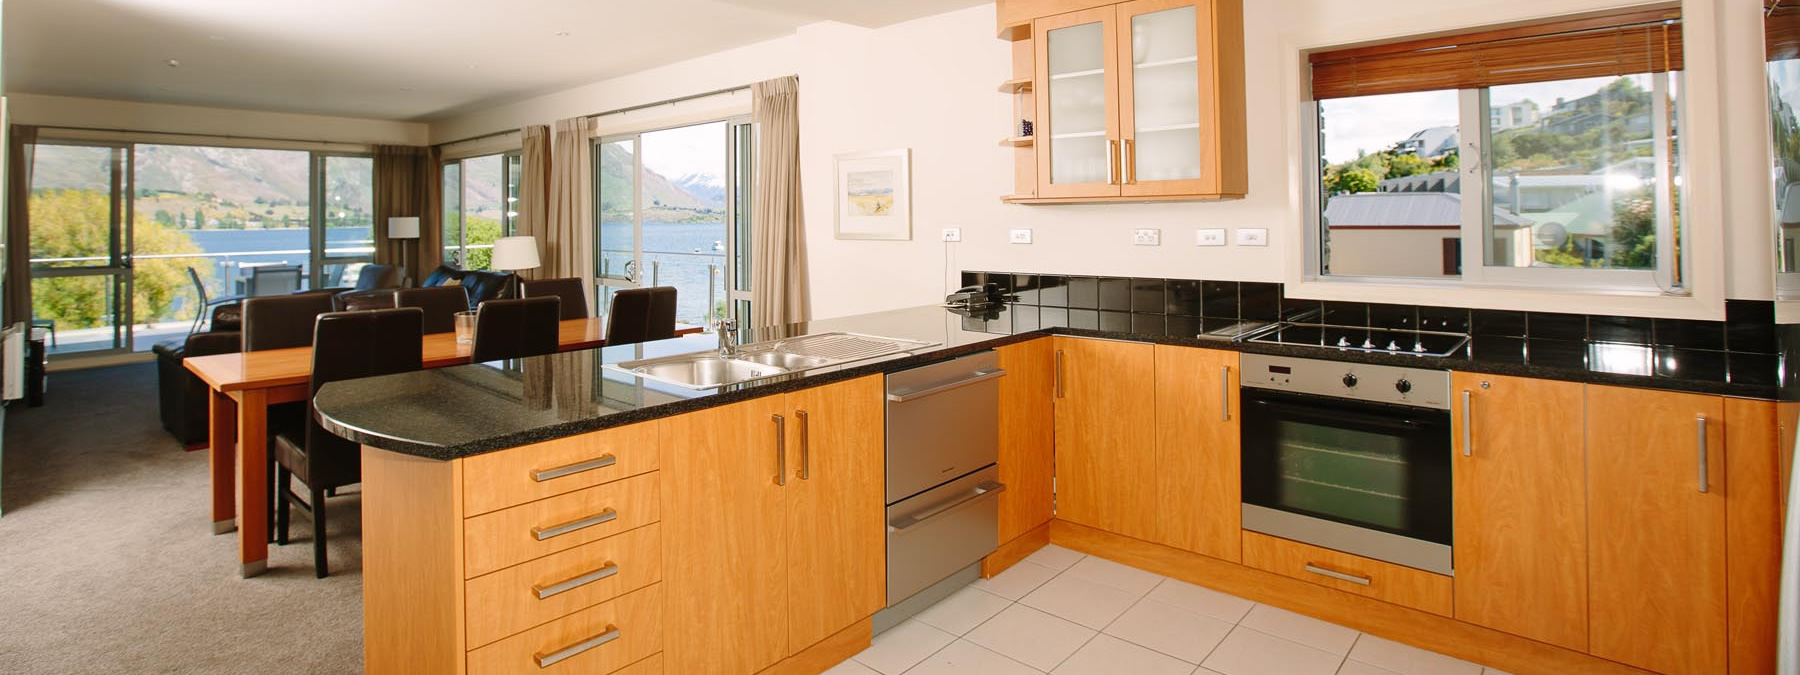 Lakeside Apartments Wanaka Luxury Serviced Apartments Kitchen Wanaka Accommodation